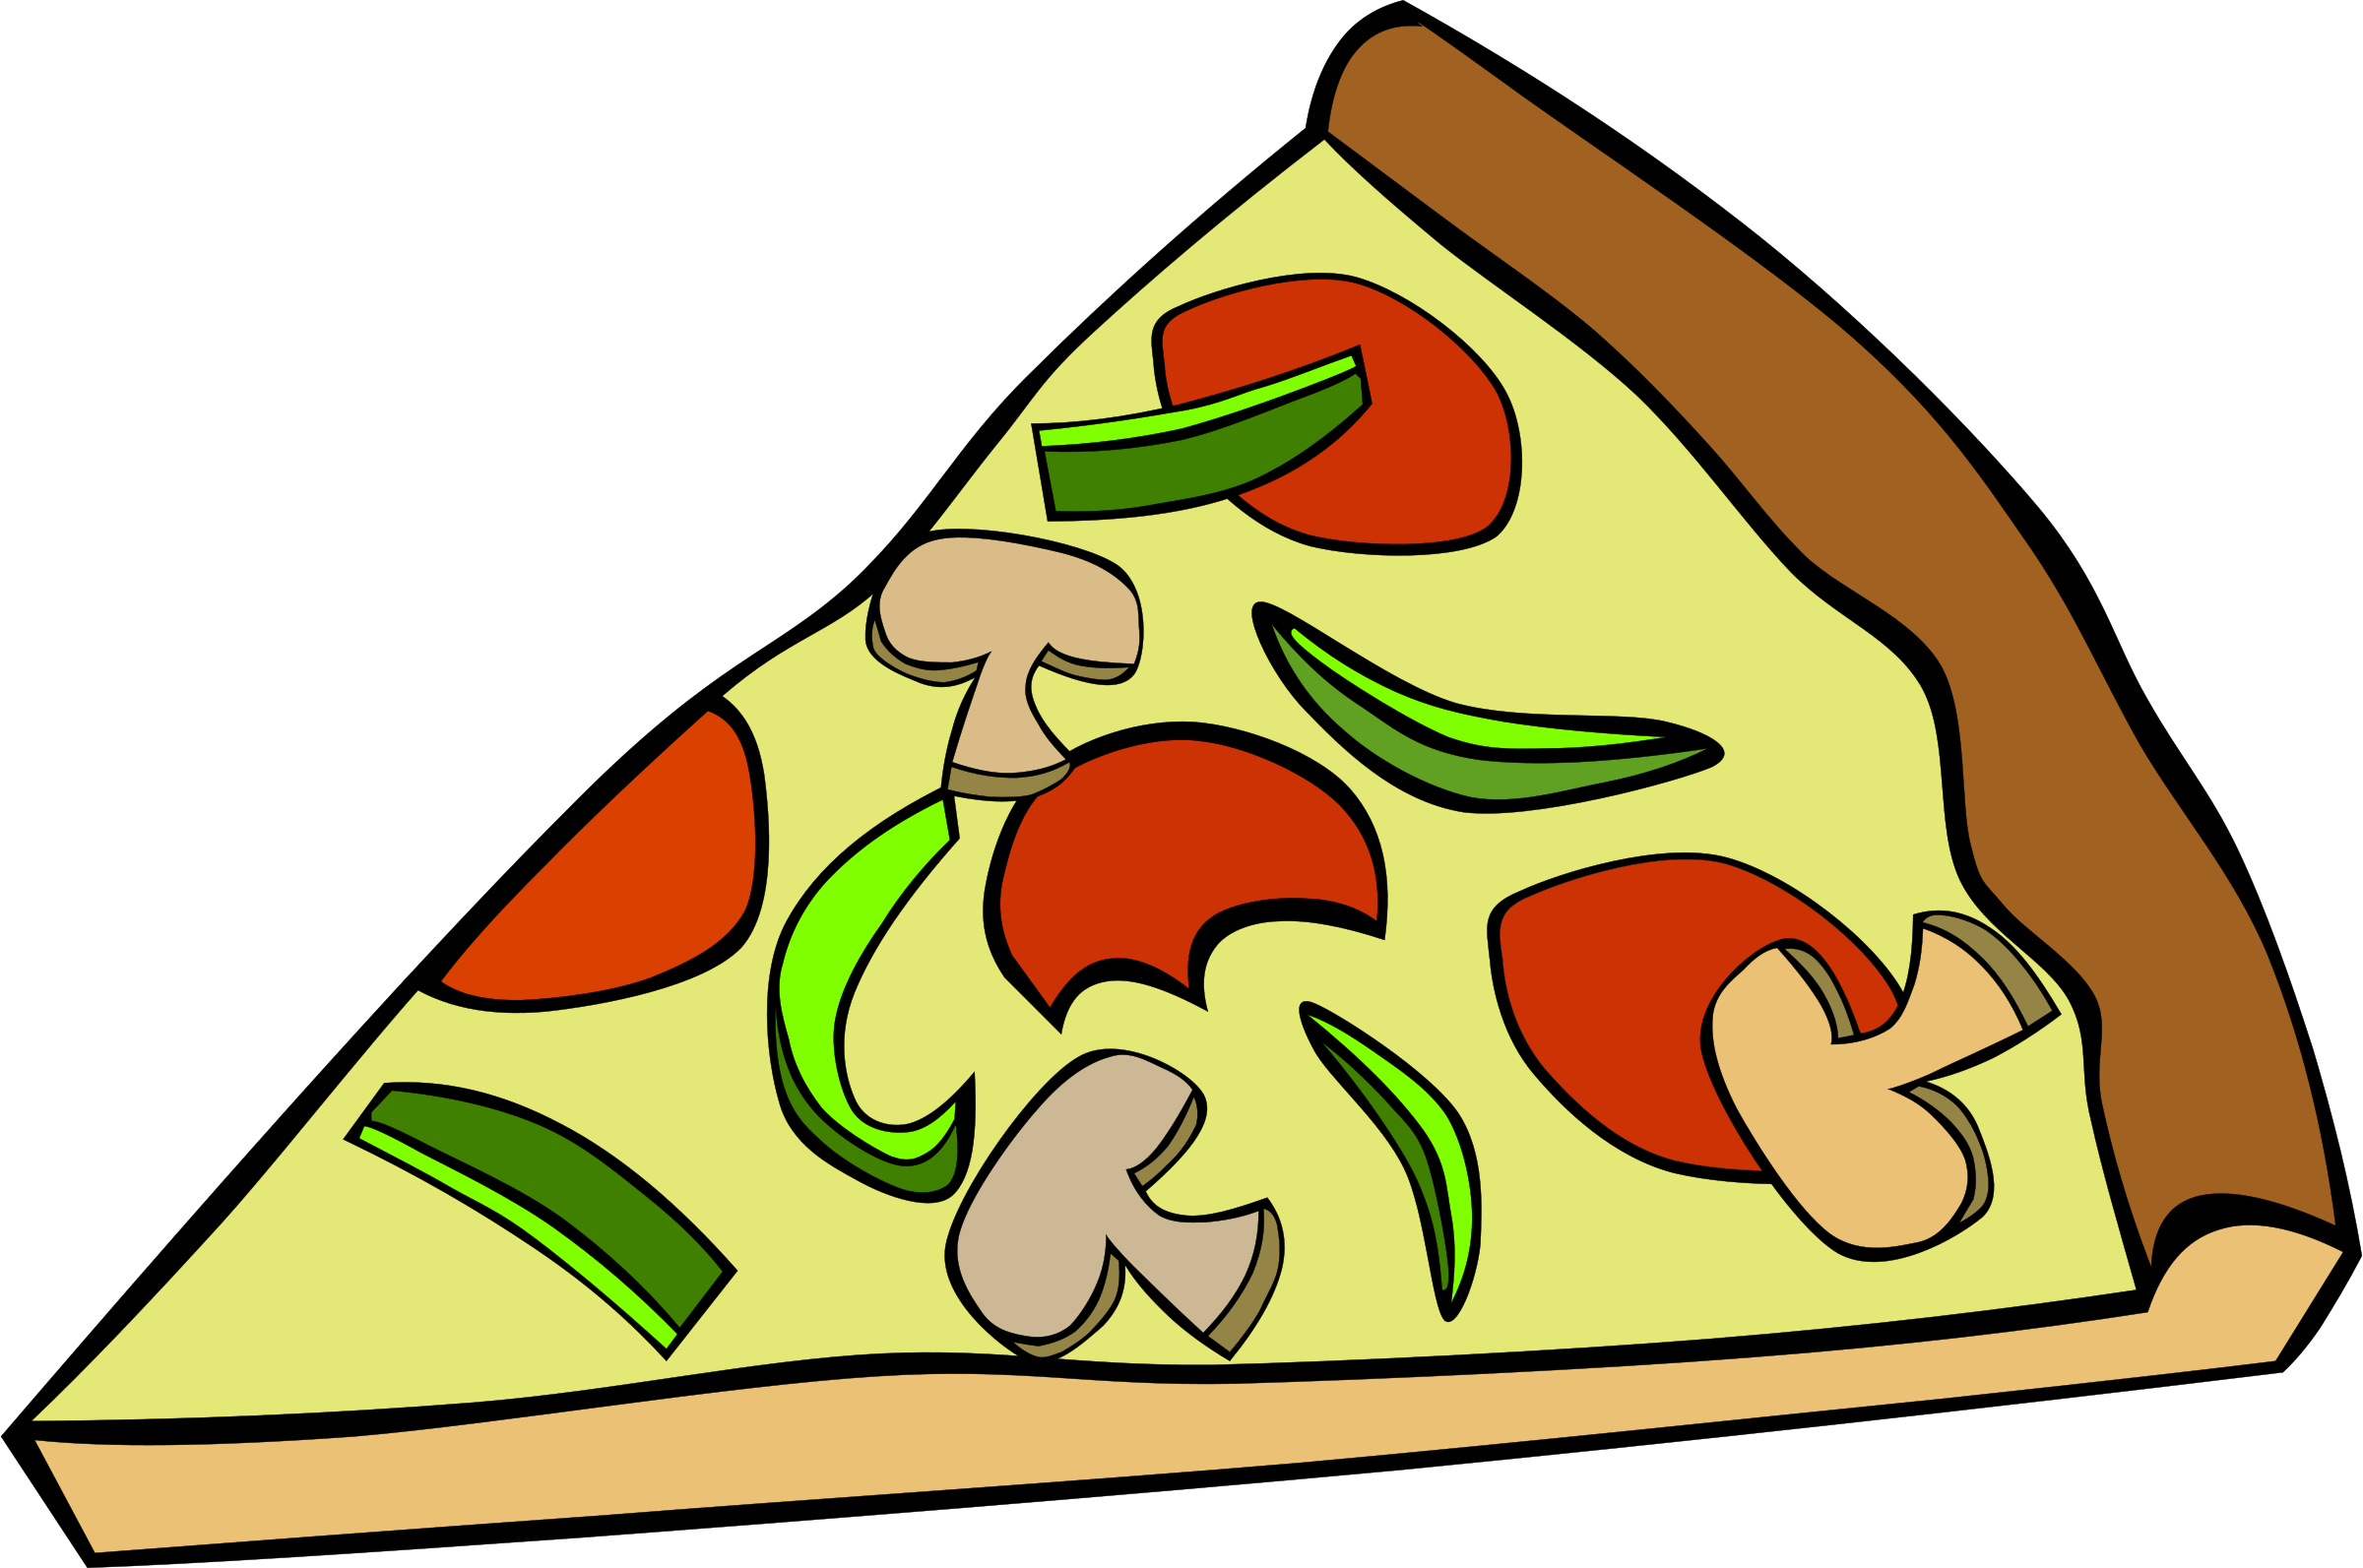 Triangle clipartfest pizzasliceclipart . Artistic clipart no background